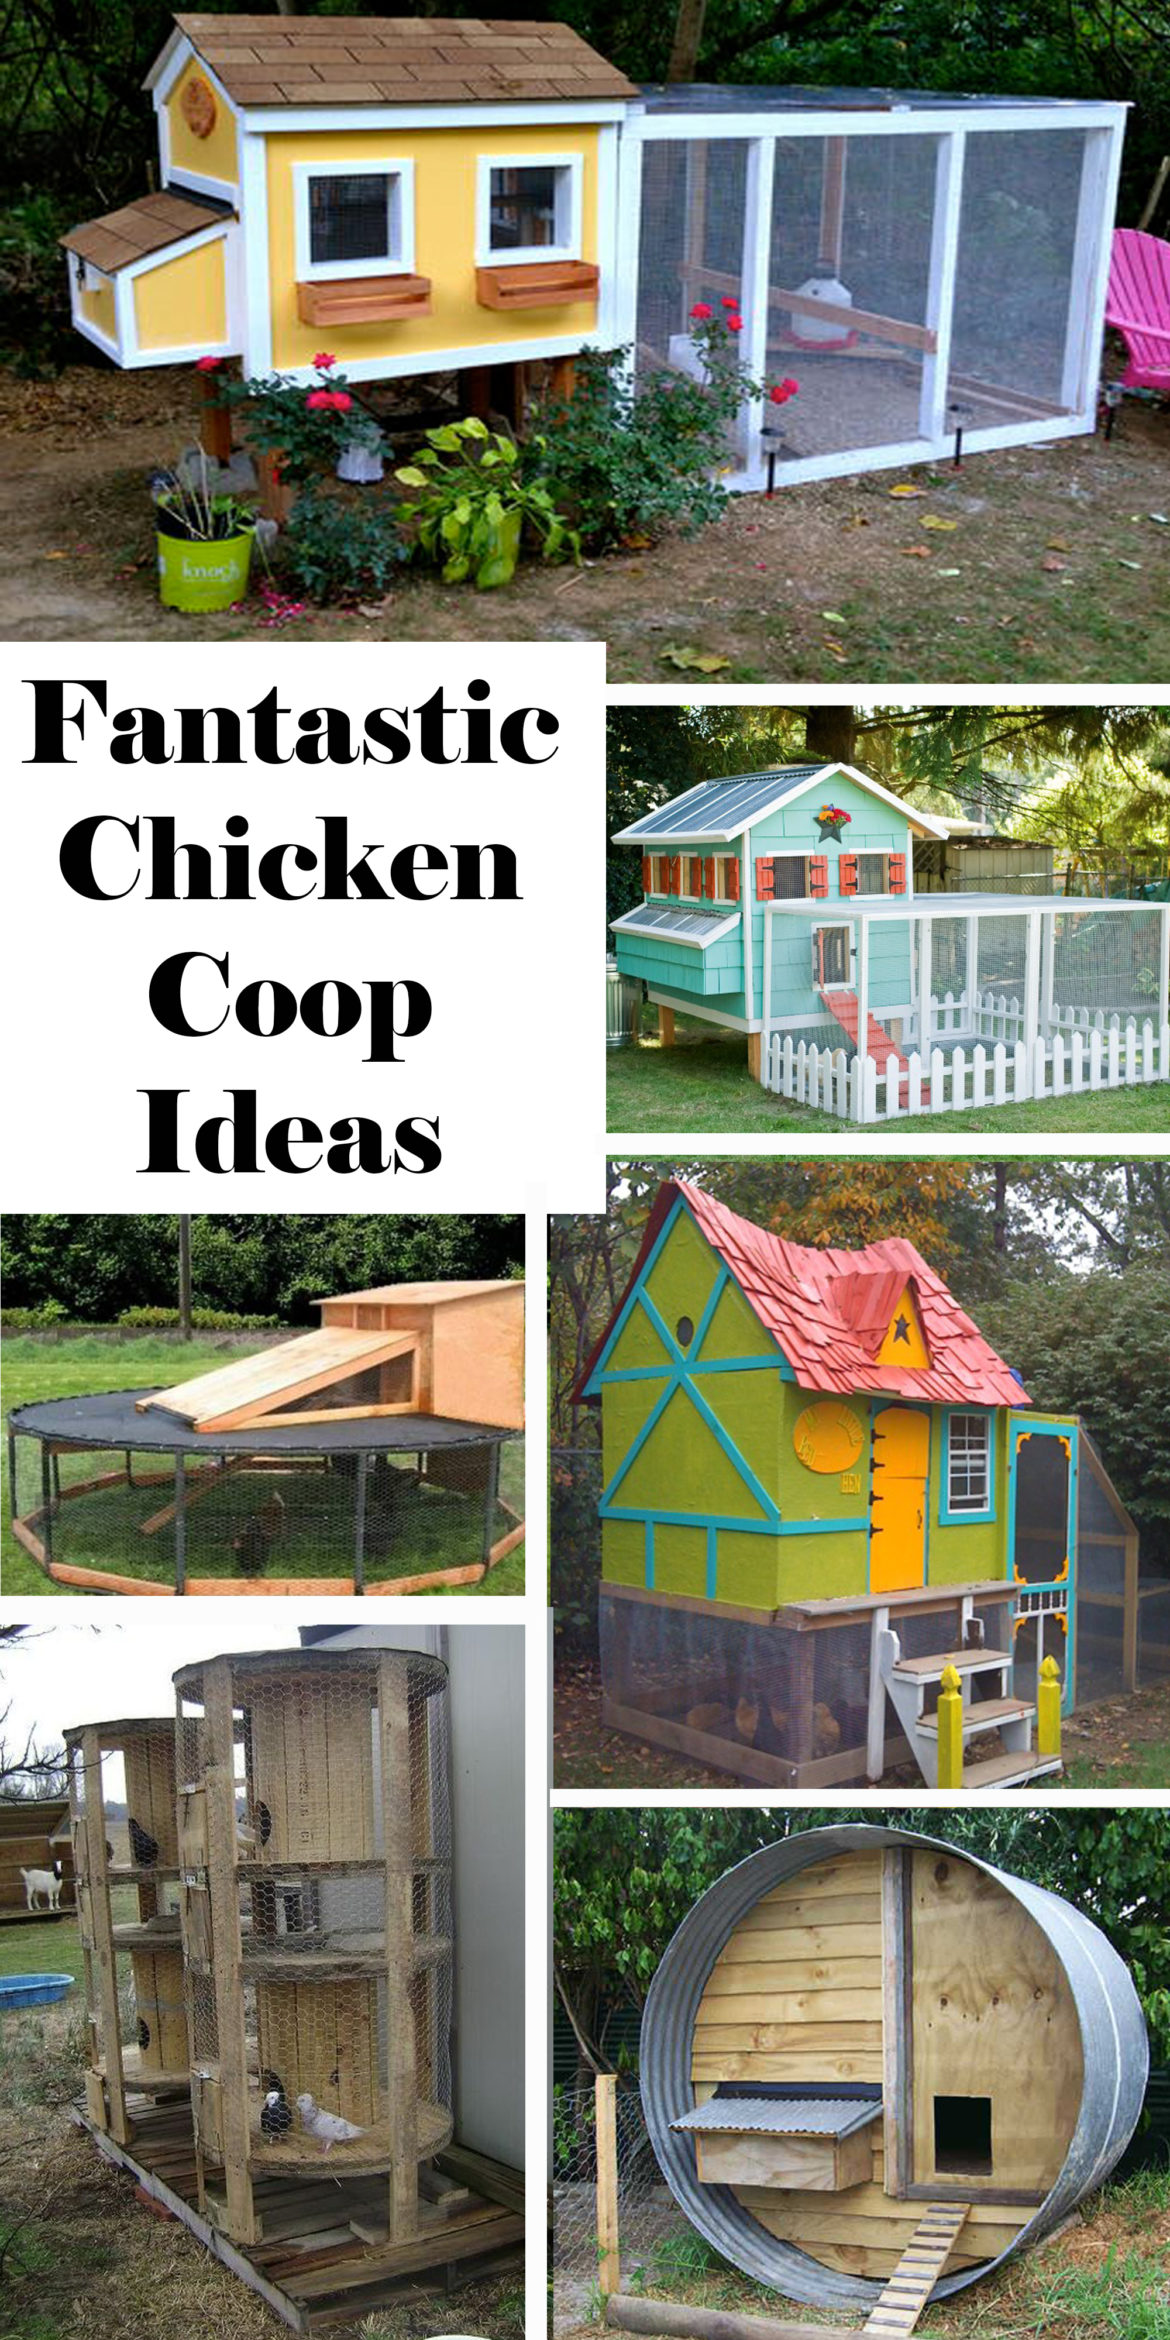 fantastic-chicken-coop-ideas